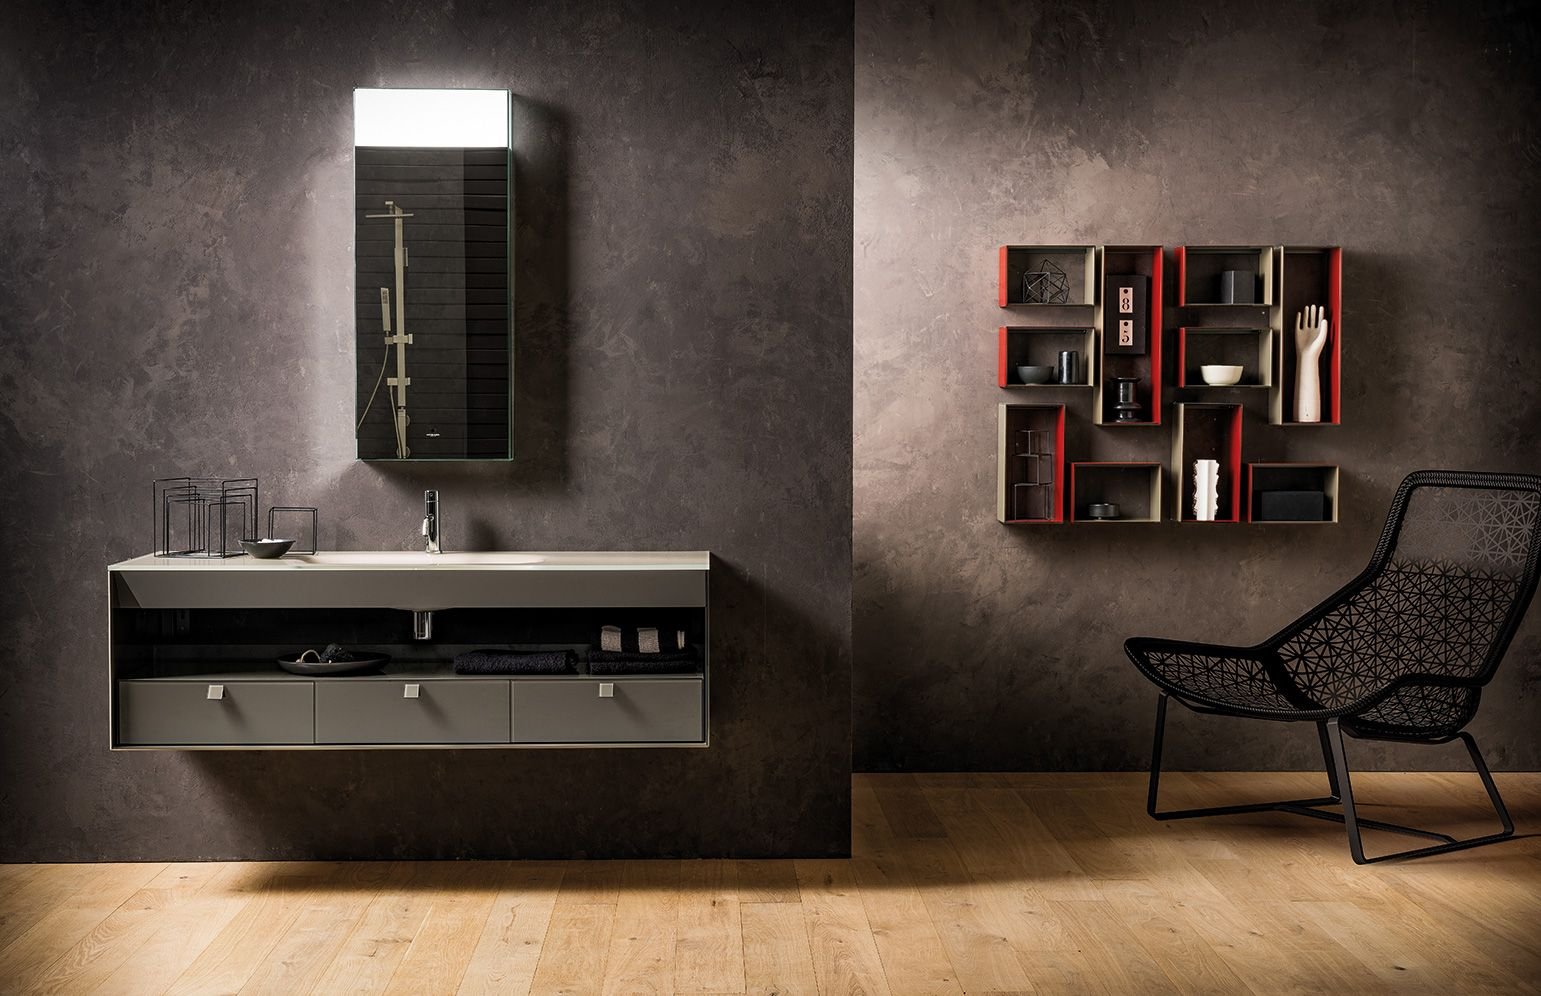 Artelinea Bagno ~ Dama artelinea made in italy florence hotel project with